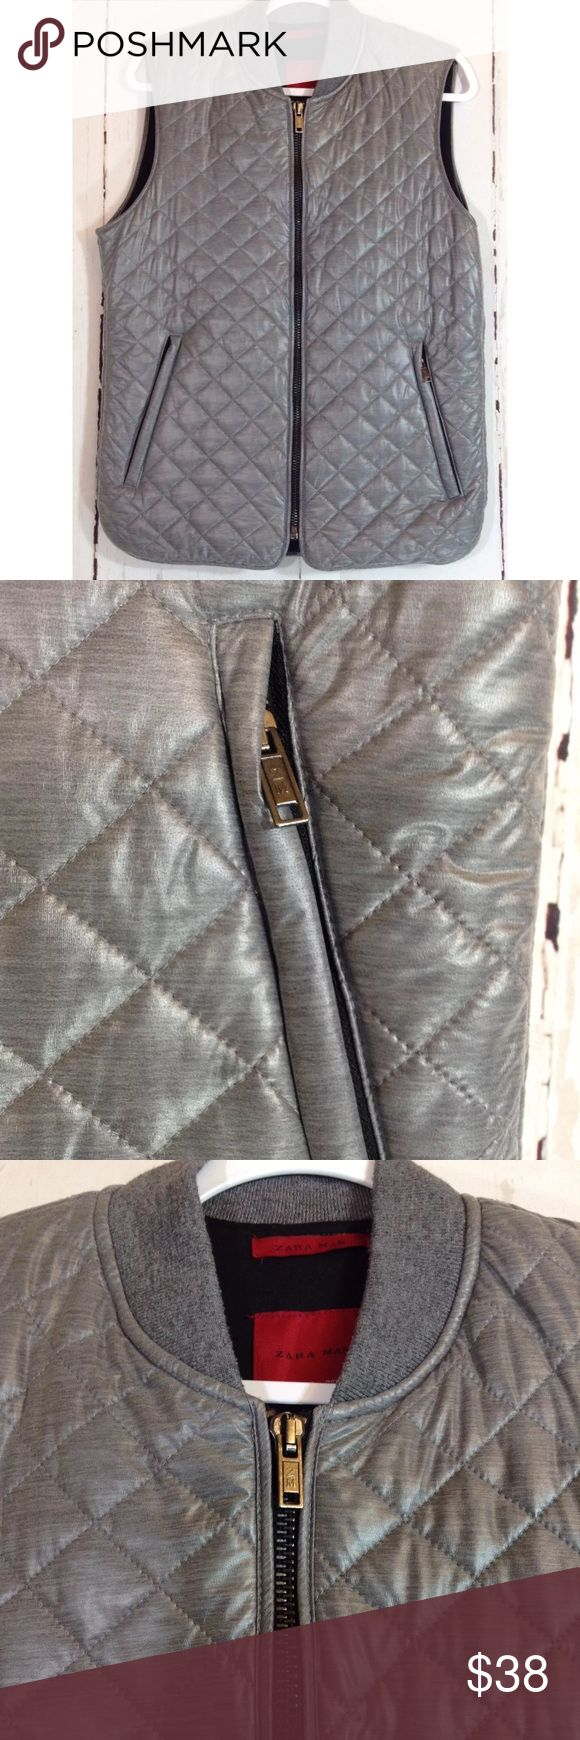 """Zara Man Silver Vest - Large Zara Man Silver Gray Quilted Zip Up Puffer Vest Jacket Size Large Zippered front pockets   Approximate flat measurements:  Chest: 19"""" Shoulders: 15.5"""" Waist: 20"""" Length from top of shoulder: 26"""" Zara Jackets & Coats Vests"""